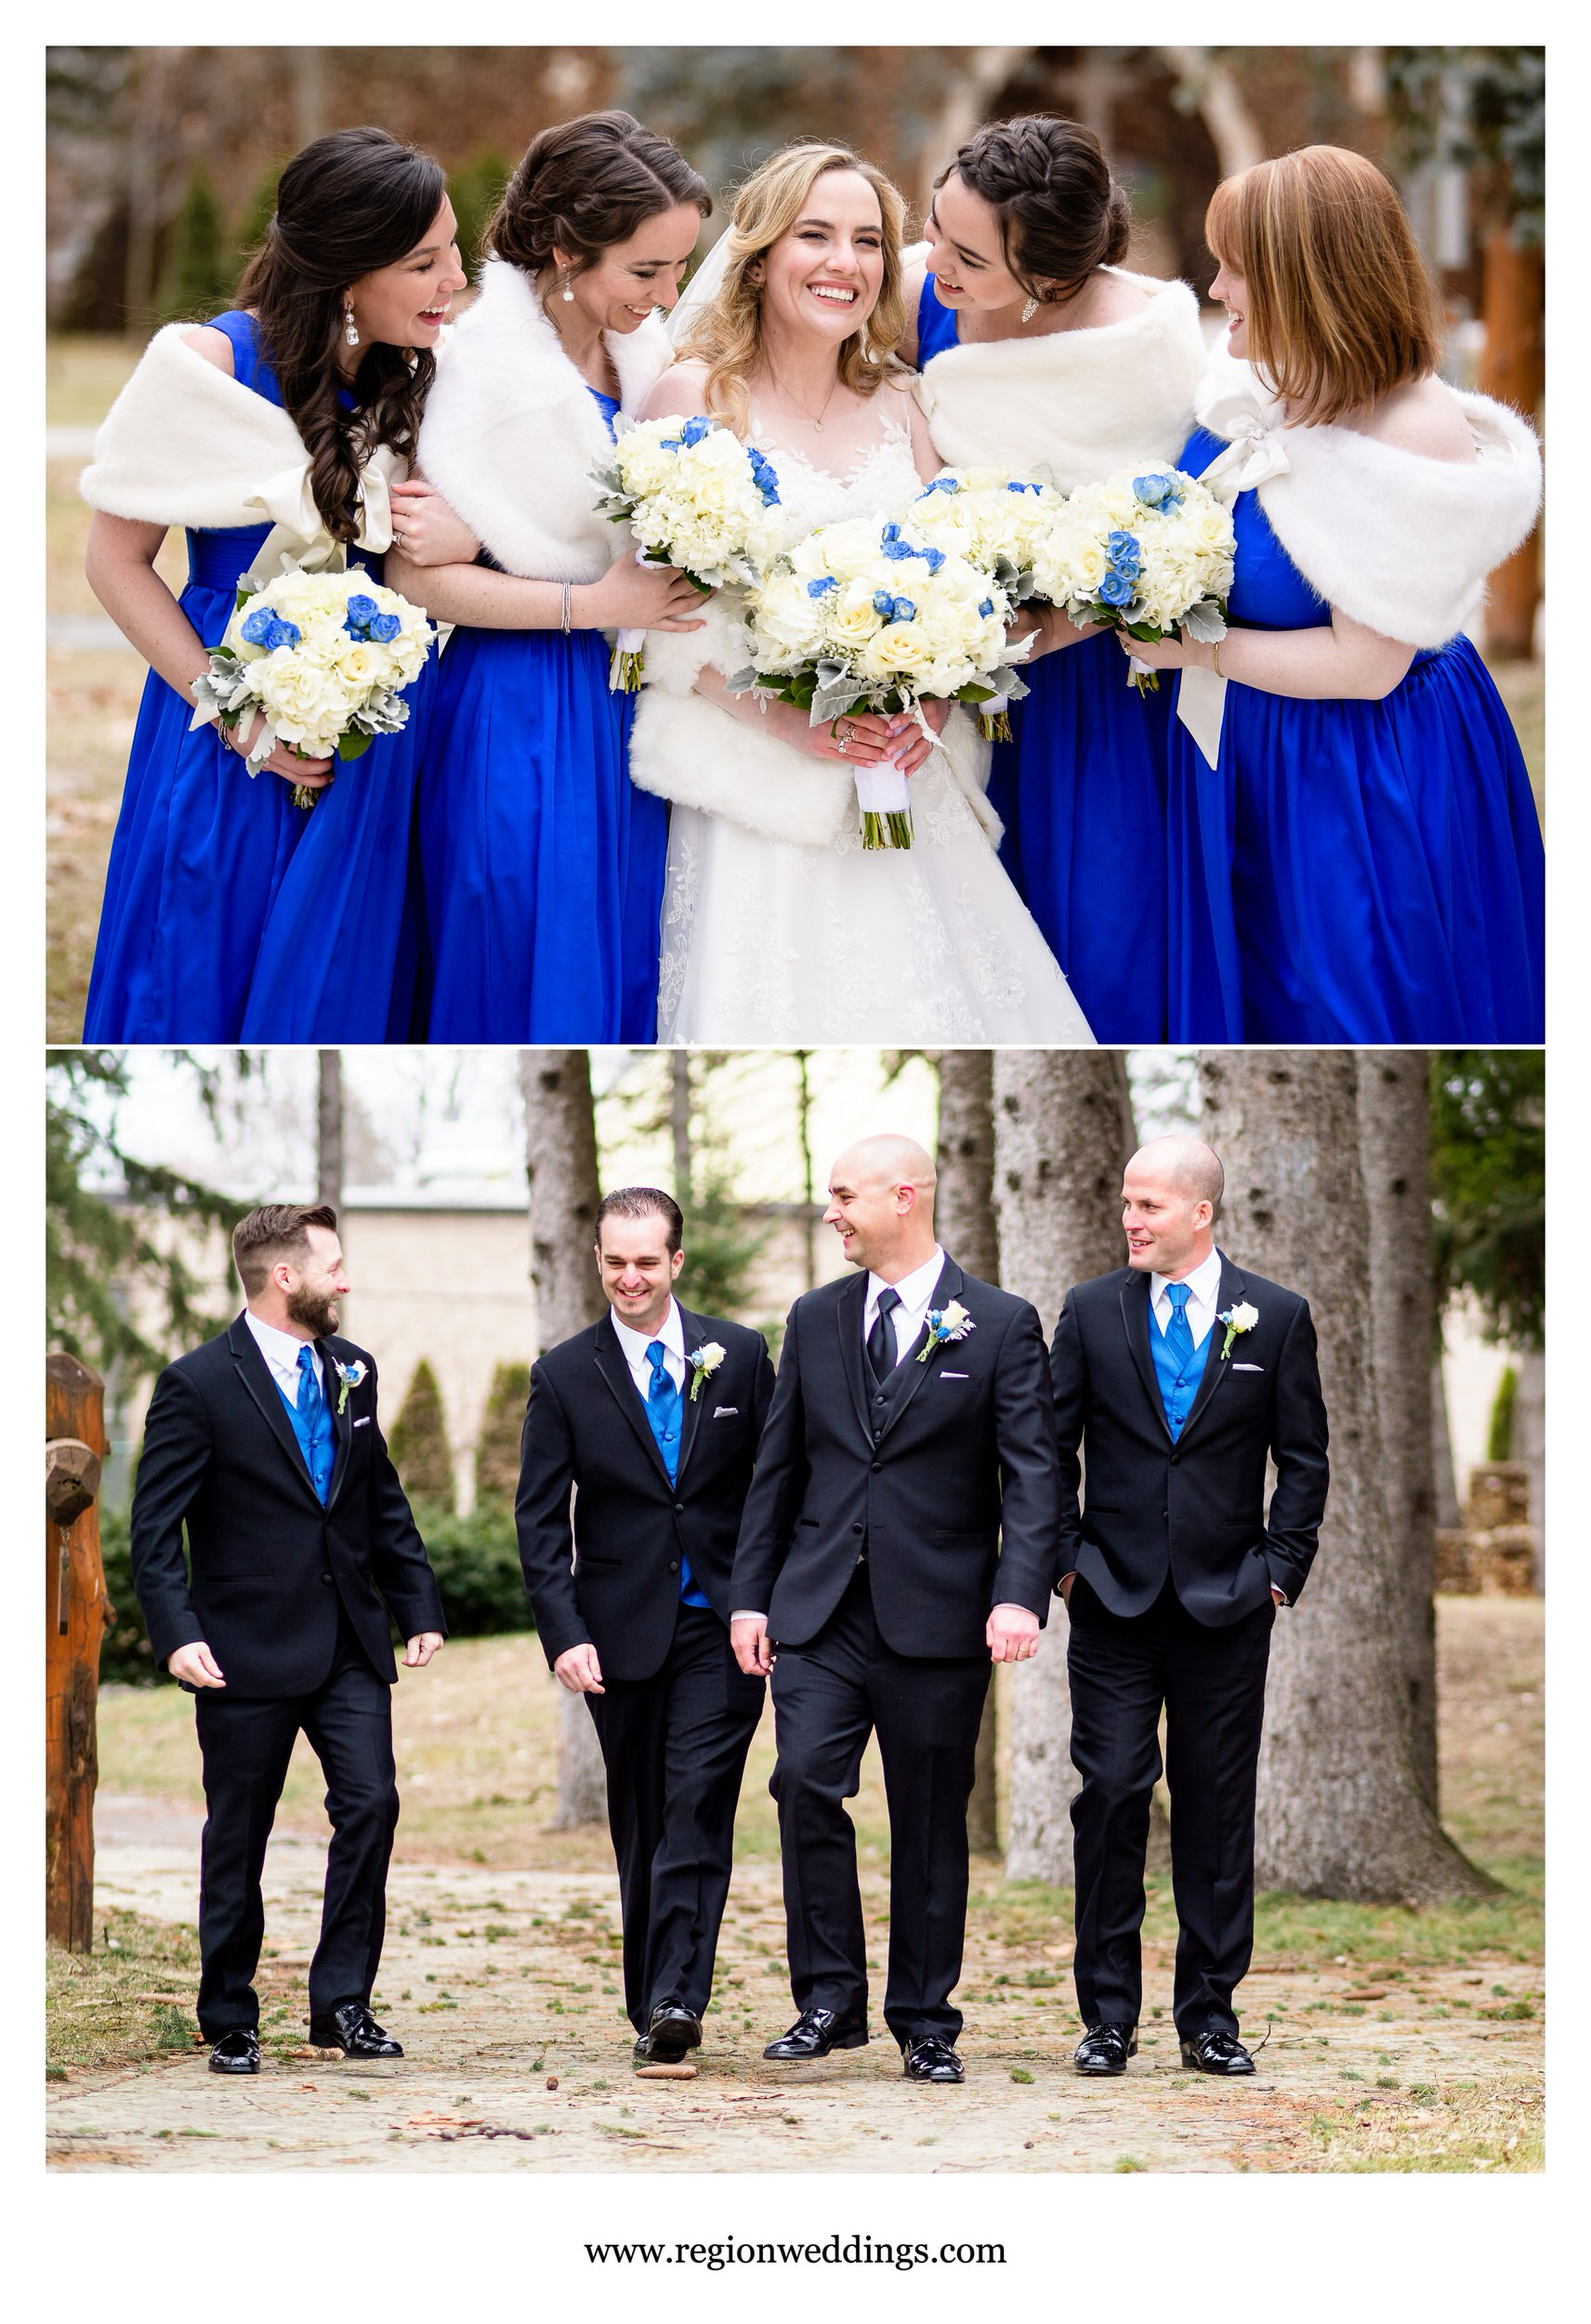 Bridesmaids and groomsmen take a winter stroll on the grounds of Carmelite Fathers.